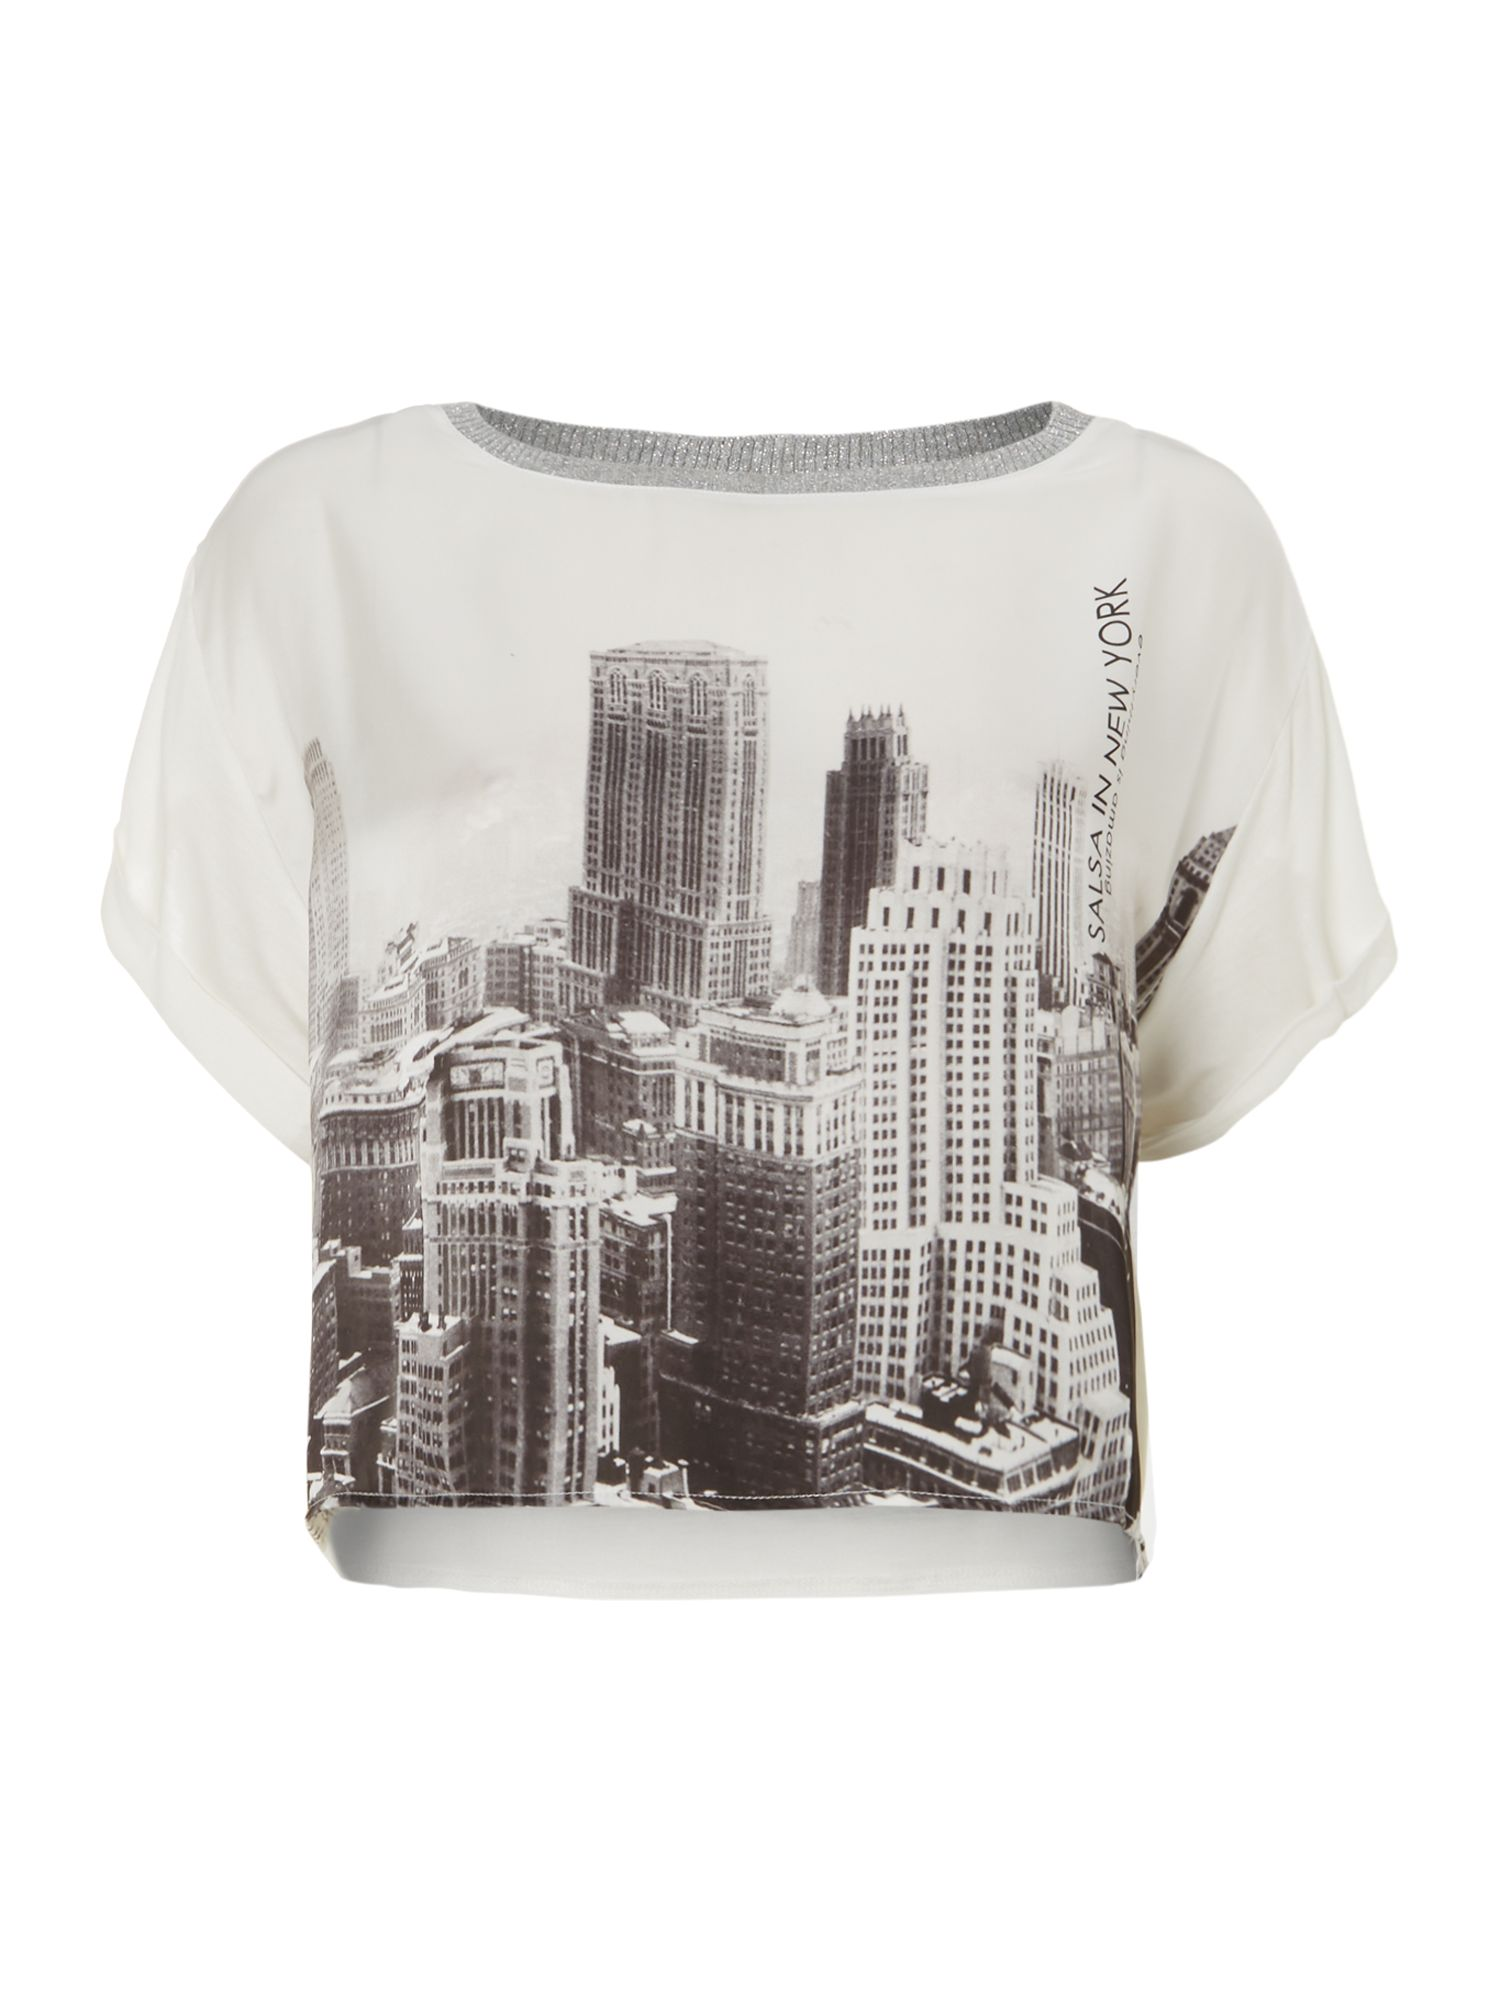 Sky scrapper cropped top